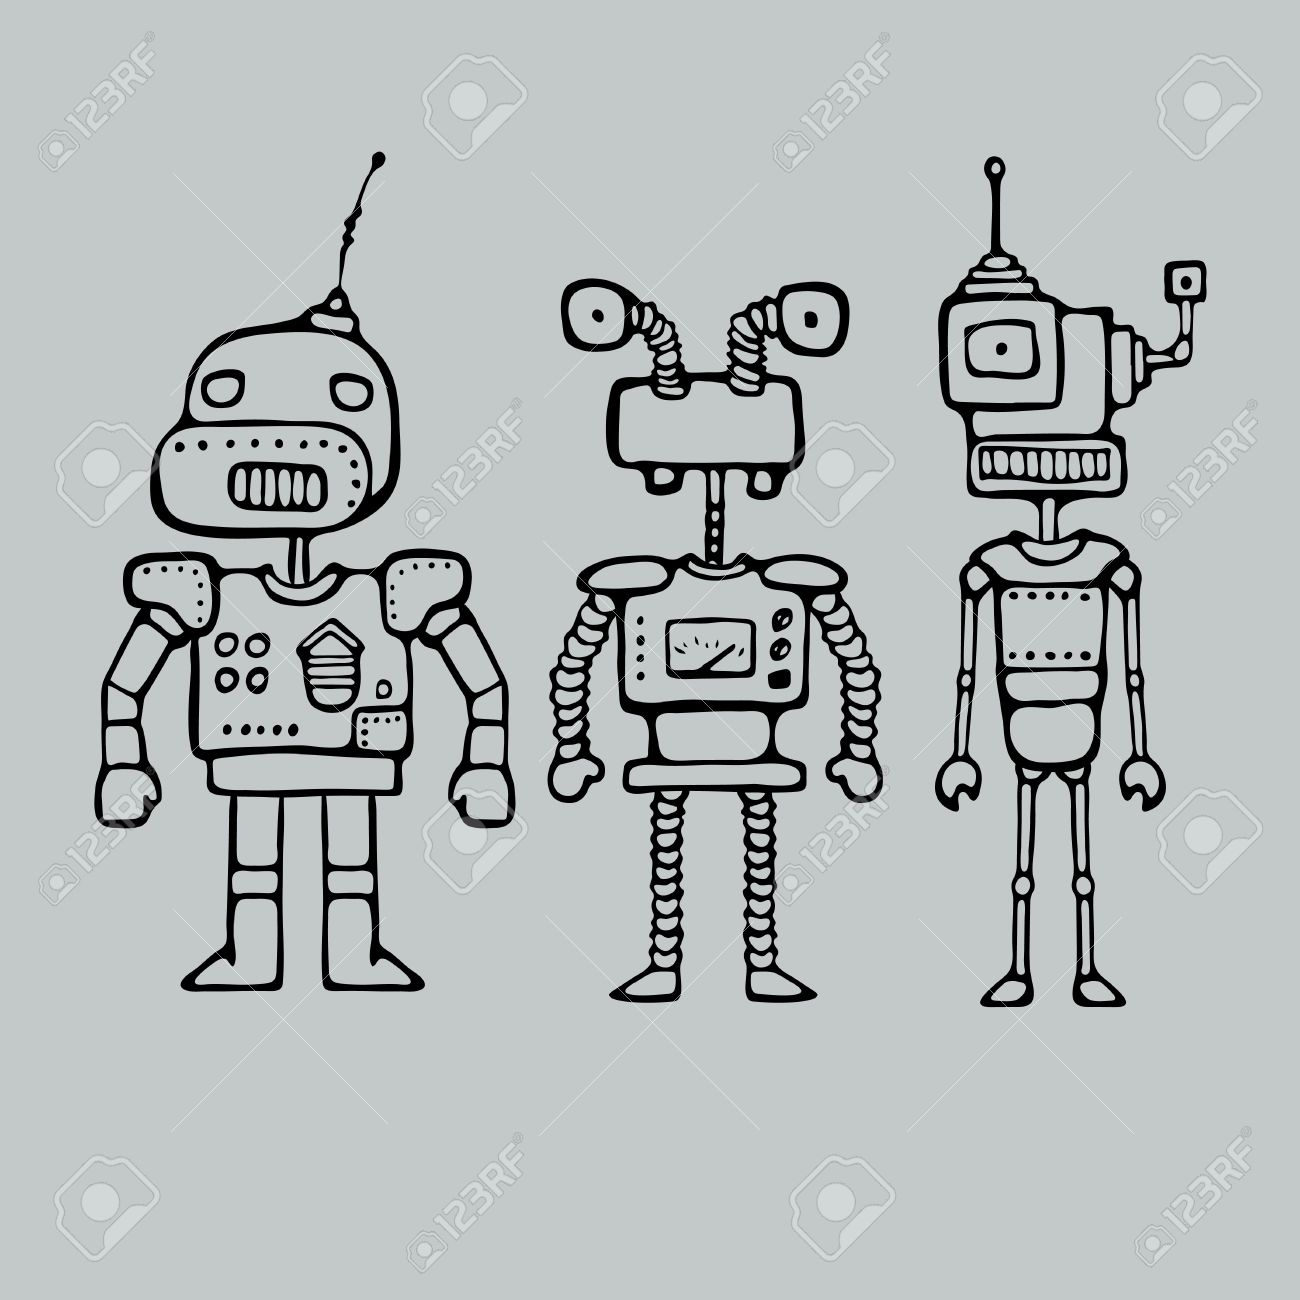 Cartoon Outlines Drawing With Three Robots Vector Illustration